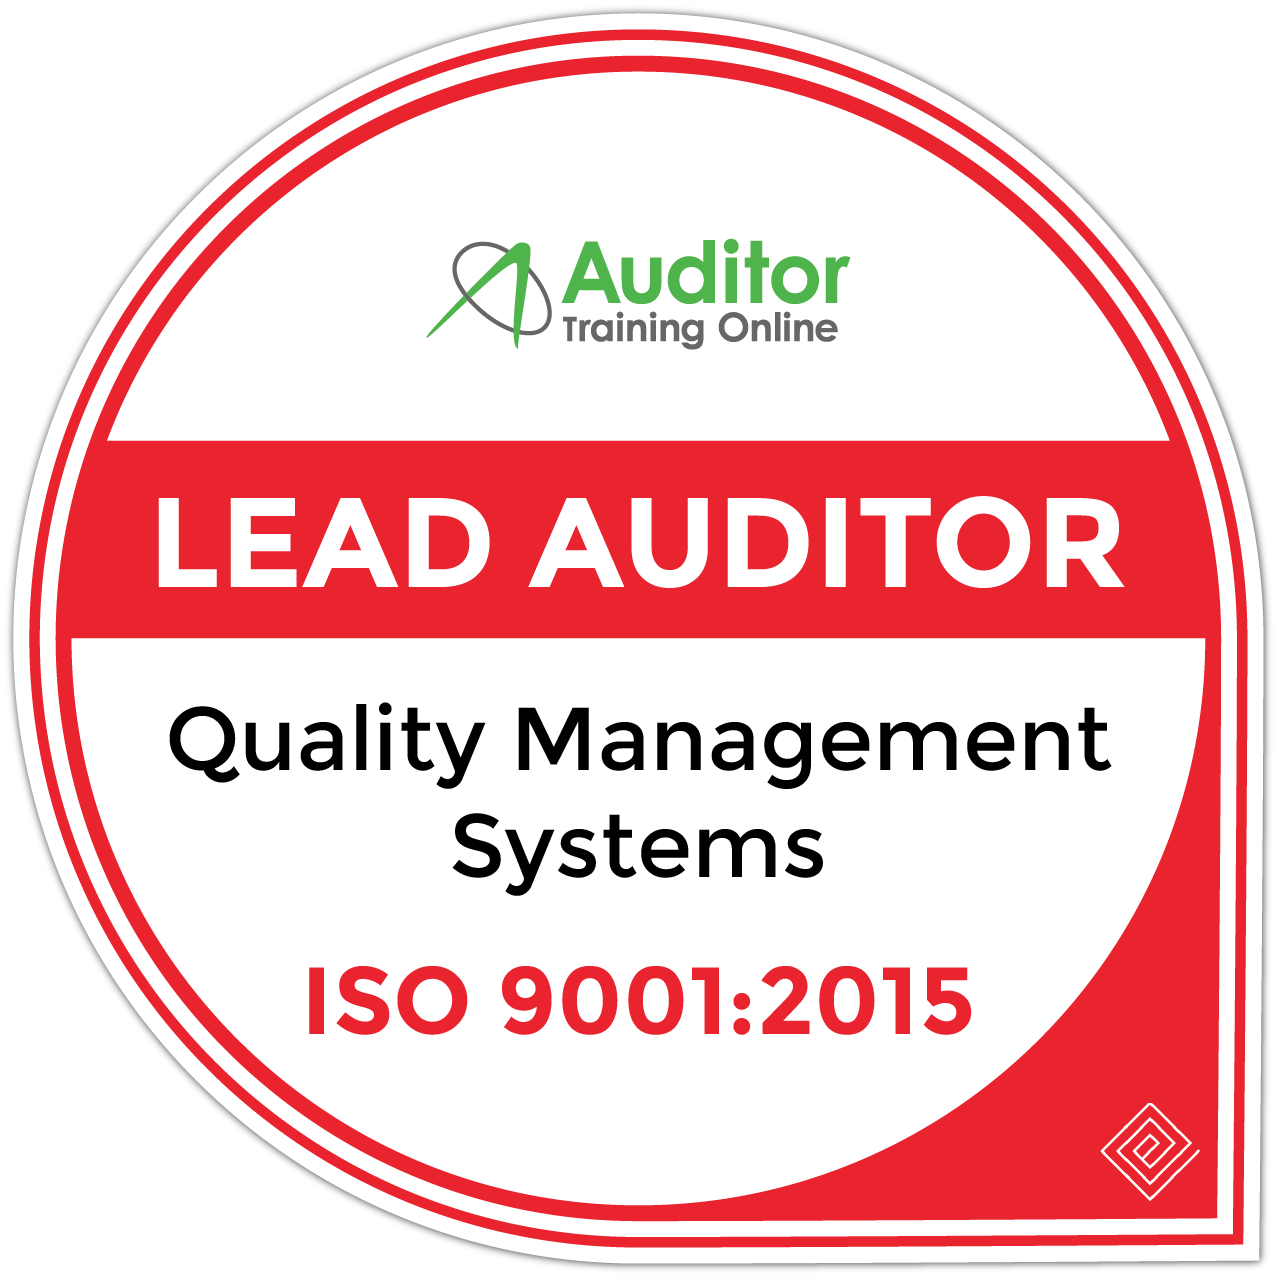 Lead Auditor Quality Management Systems